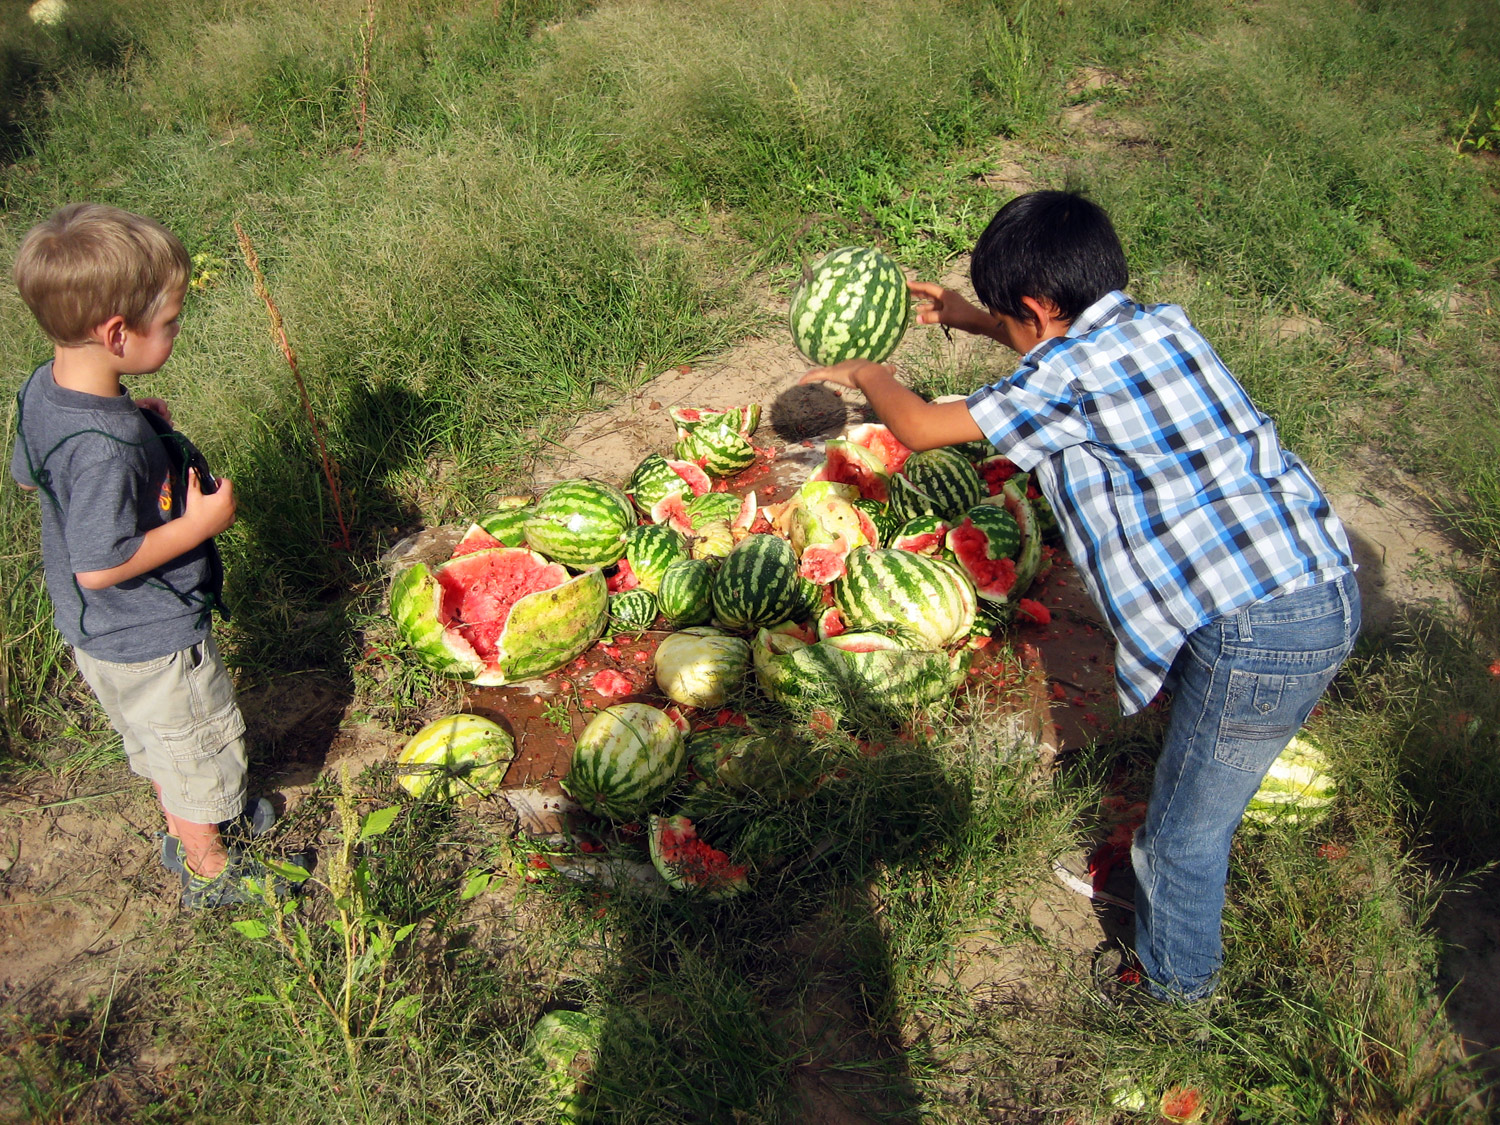 Smashing over-ripe watermelons left in the fields after harvest.